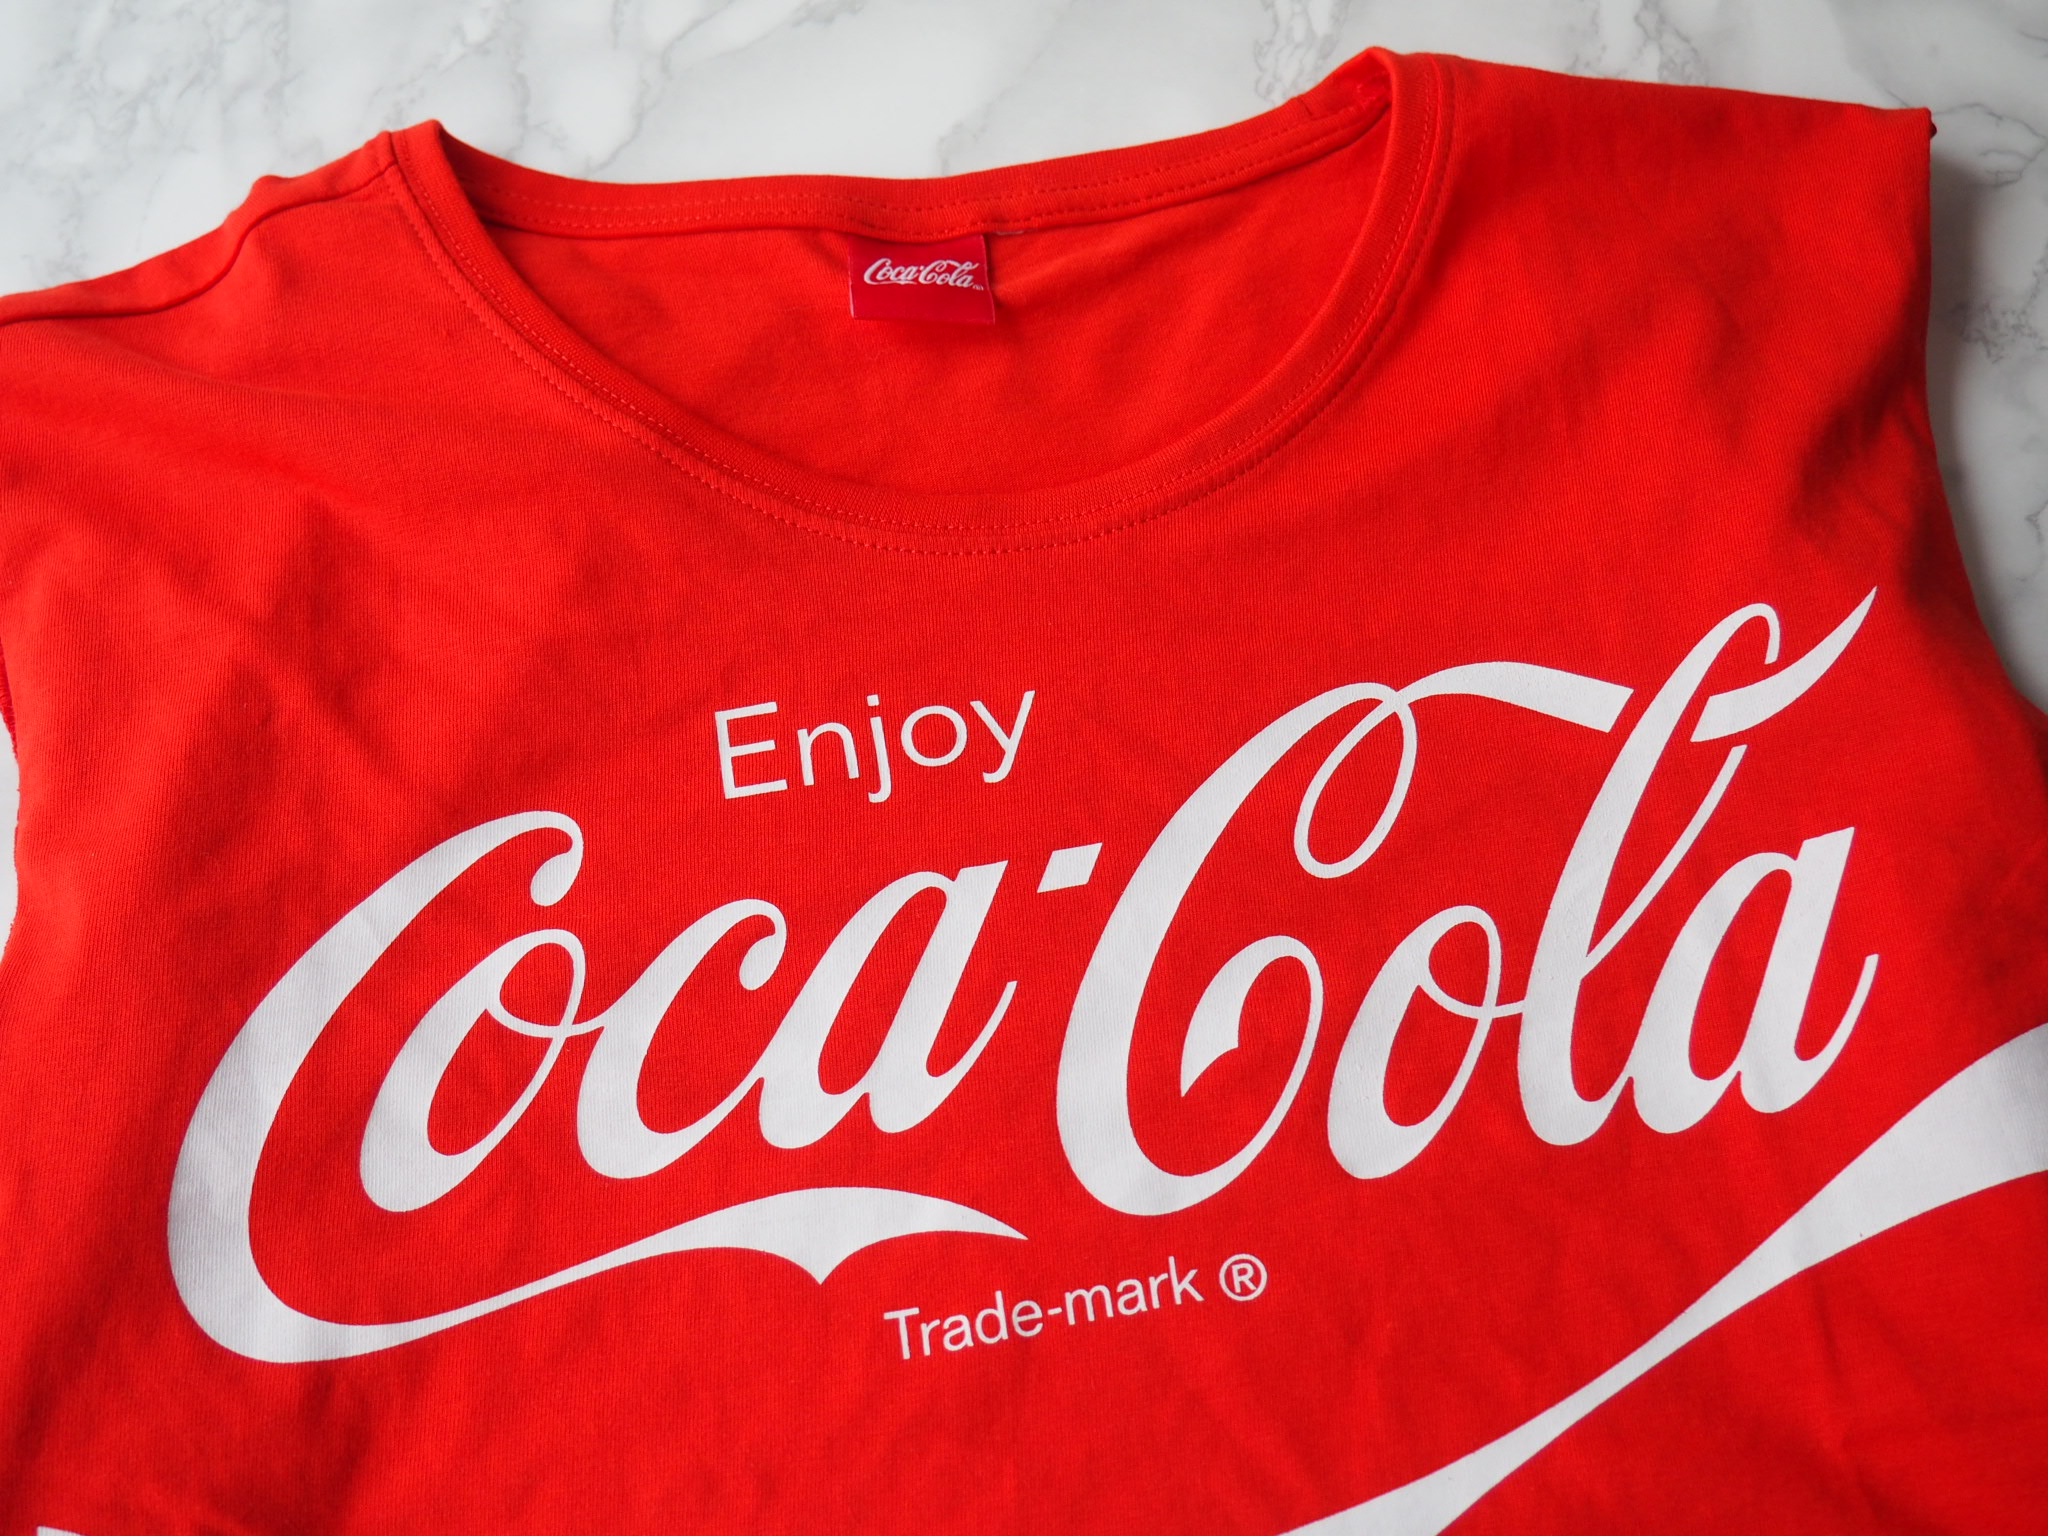 Everything Looks Better With Coke